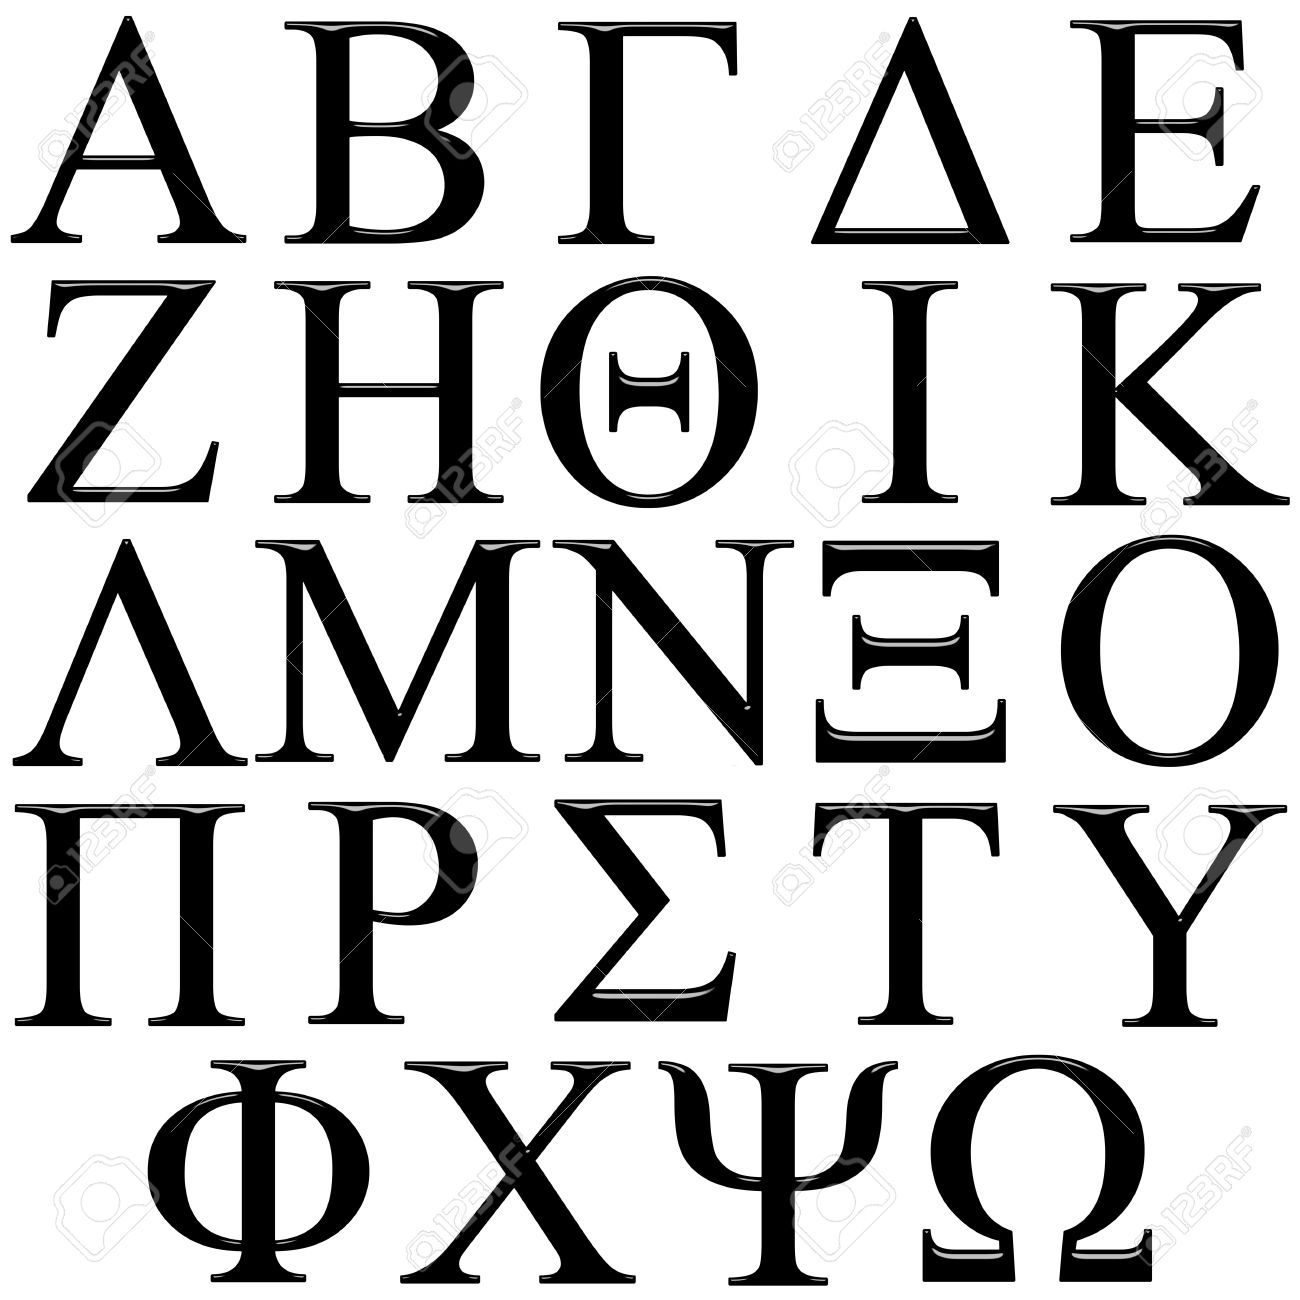 Clipart greek letters vector library stock Clipart greek letters - ClipartFest vector library stock